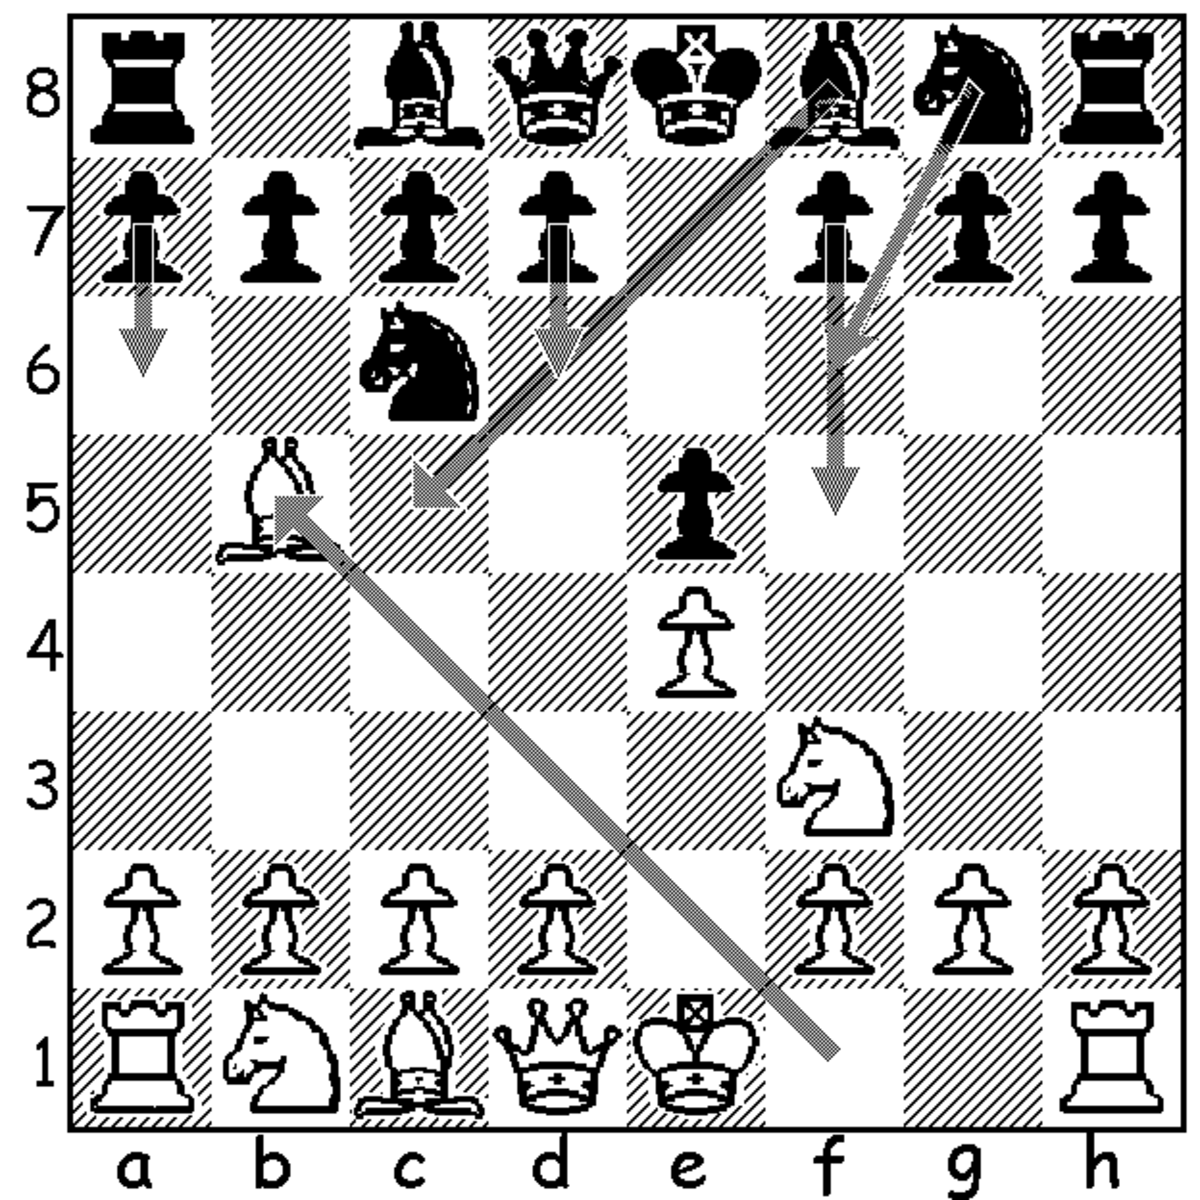 Above are arrows depicting black's five most common third move options in the Ruy Lopez.